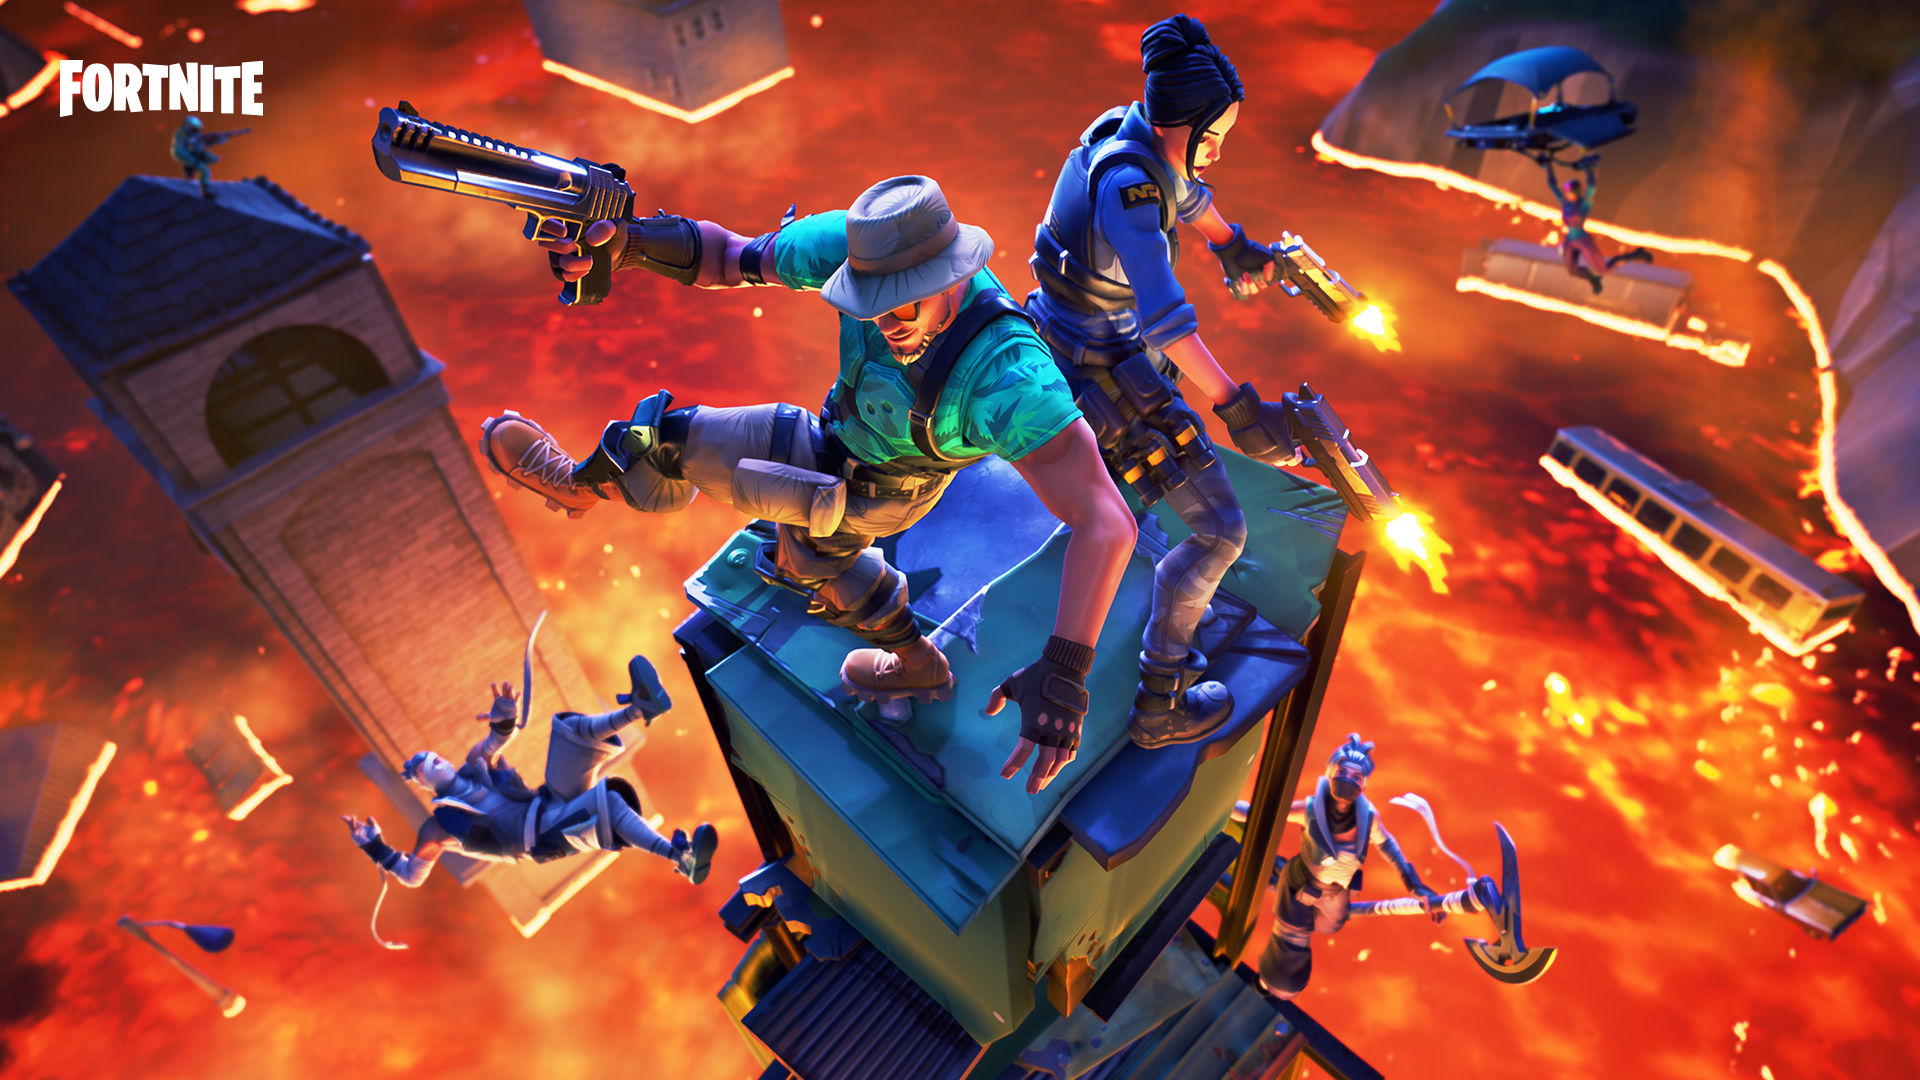 Fortnite's 8.20 Update Adds Limited-Time Mode, and Foraged Items